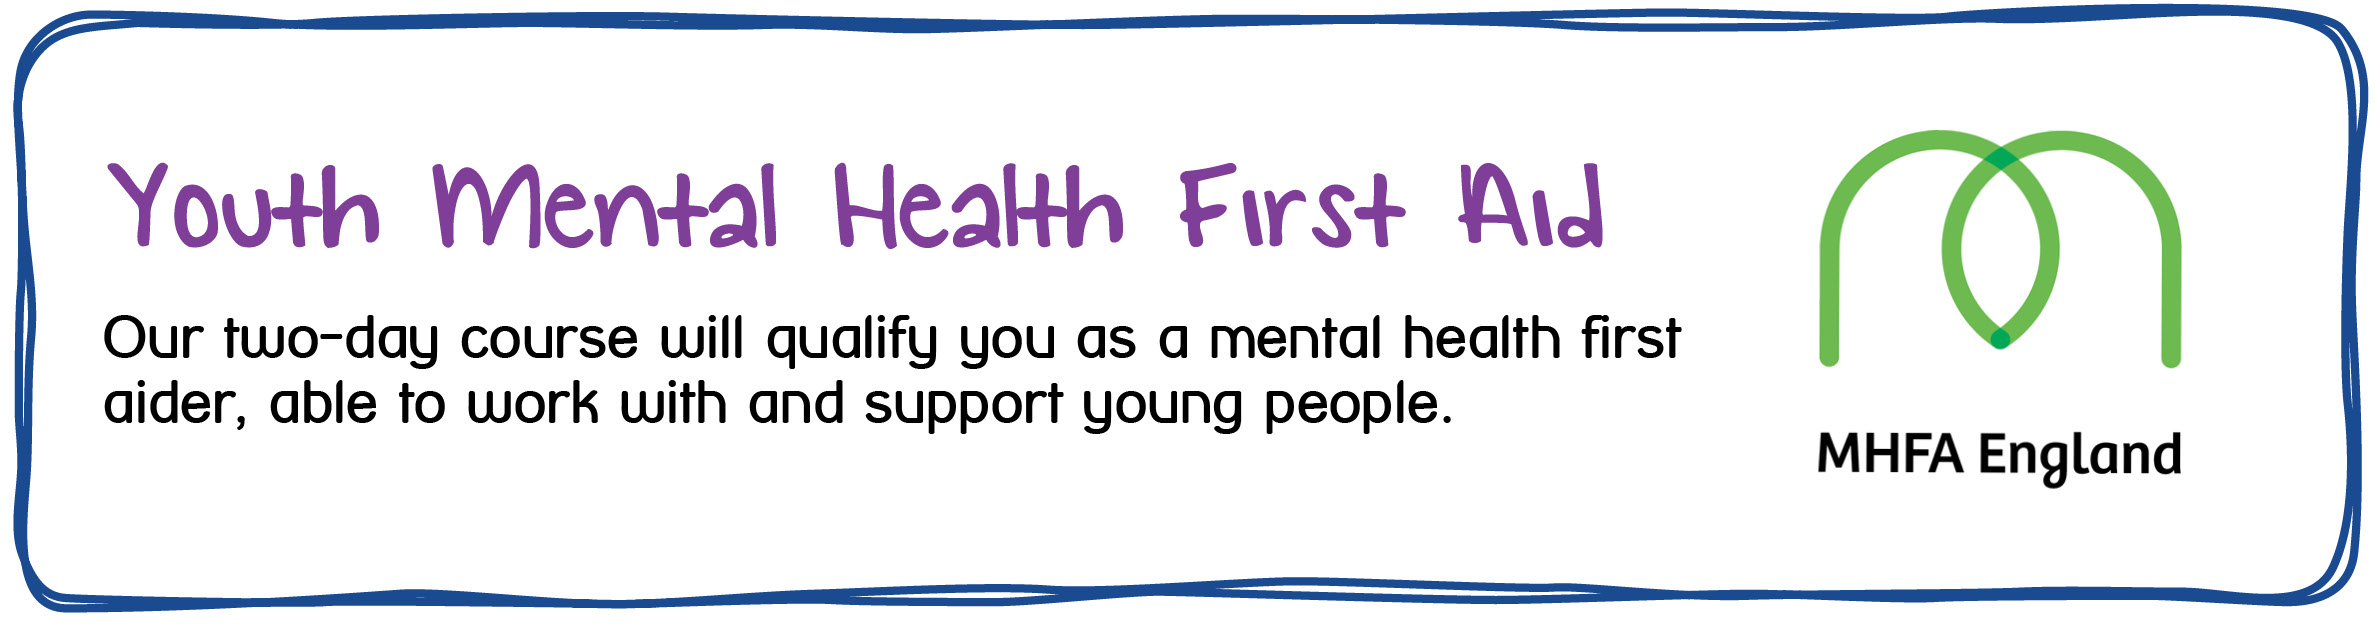 Youth Mental Health First Aid - Our two-day course will qualify you as a mental health first aider, able to work with an support young people.